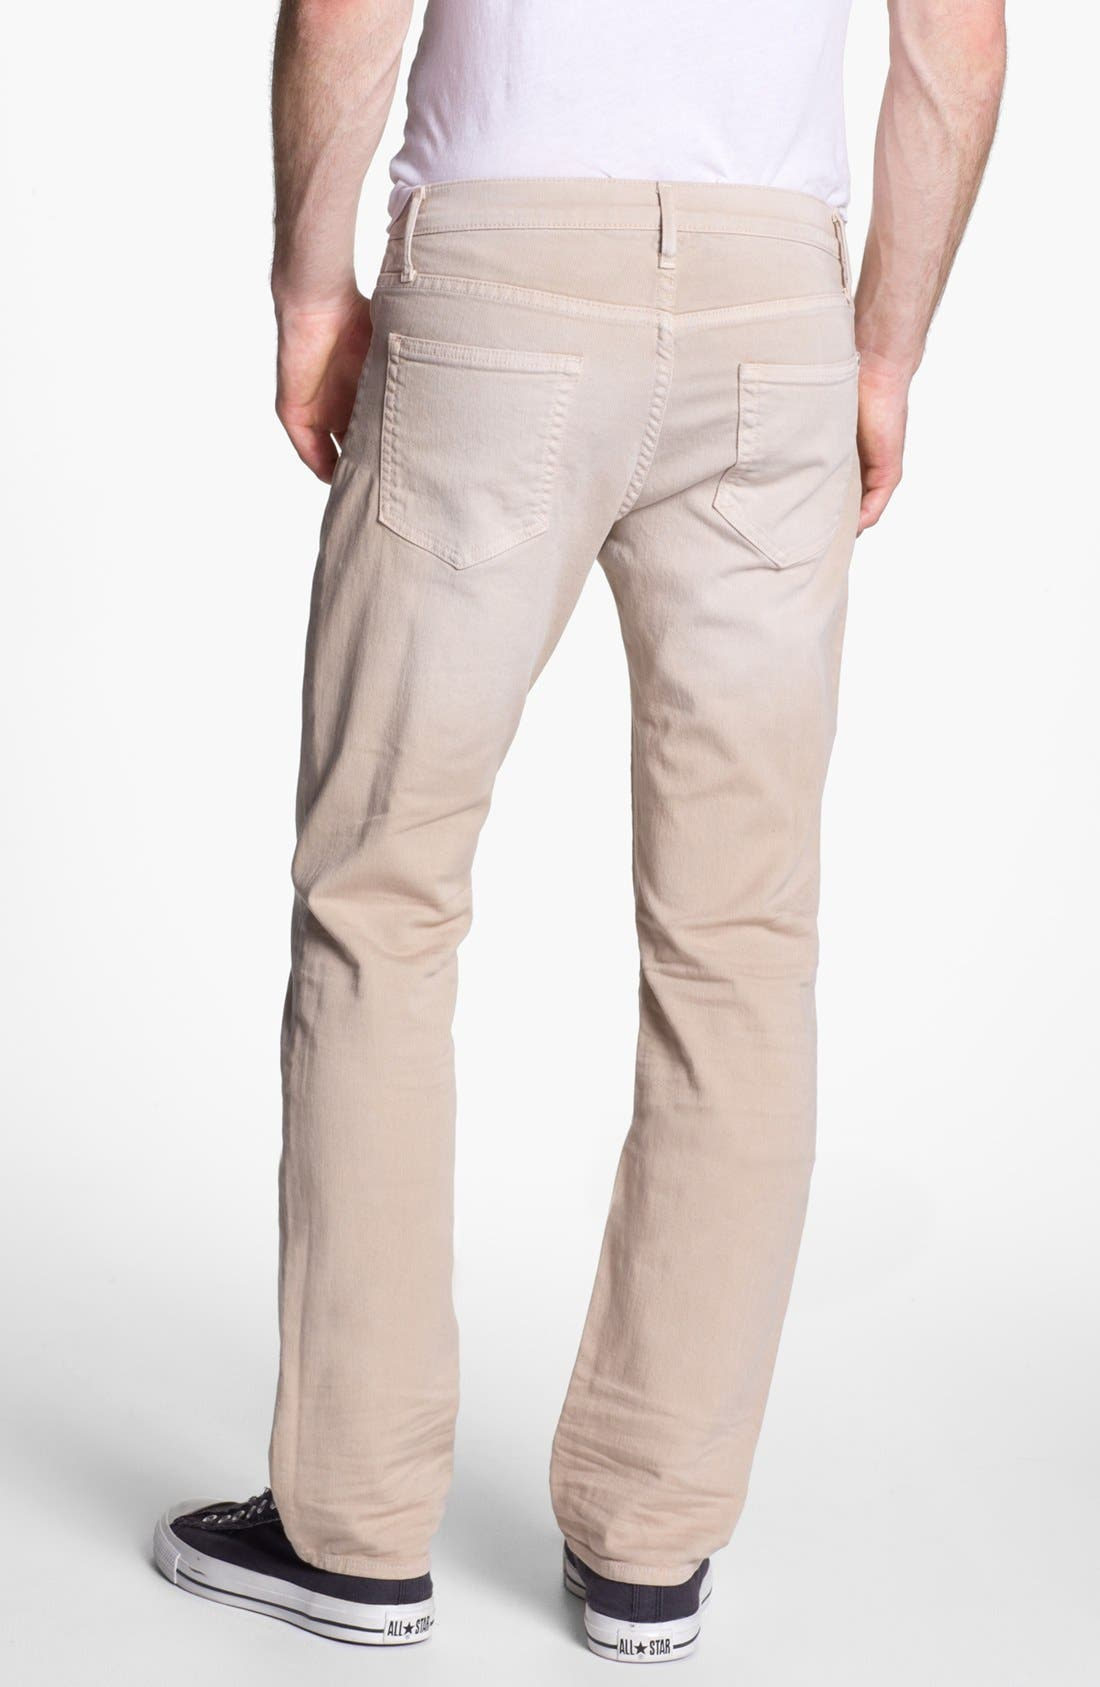 Alternate Image 1 Selected - Koral 'Los Angeles' Slim Leg Jeans (Tan)